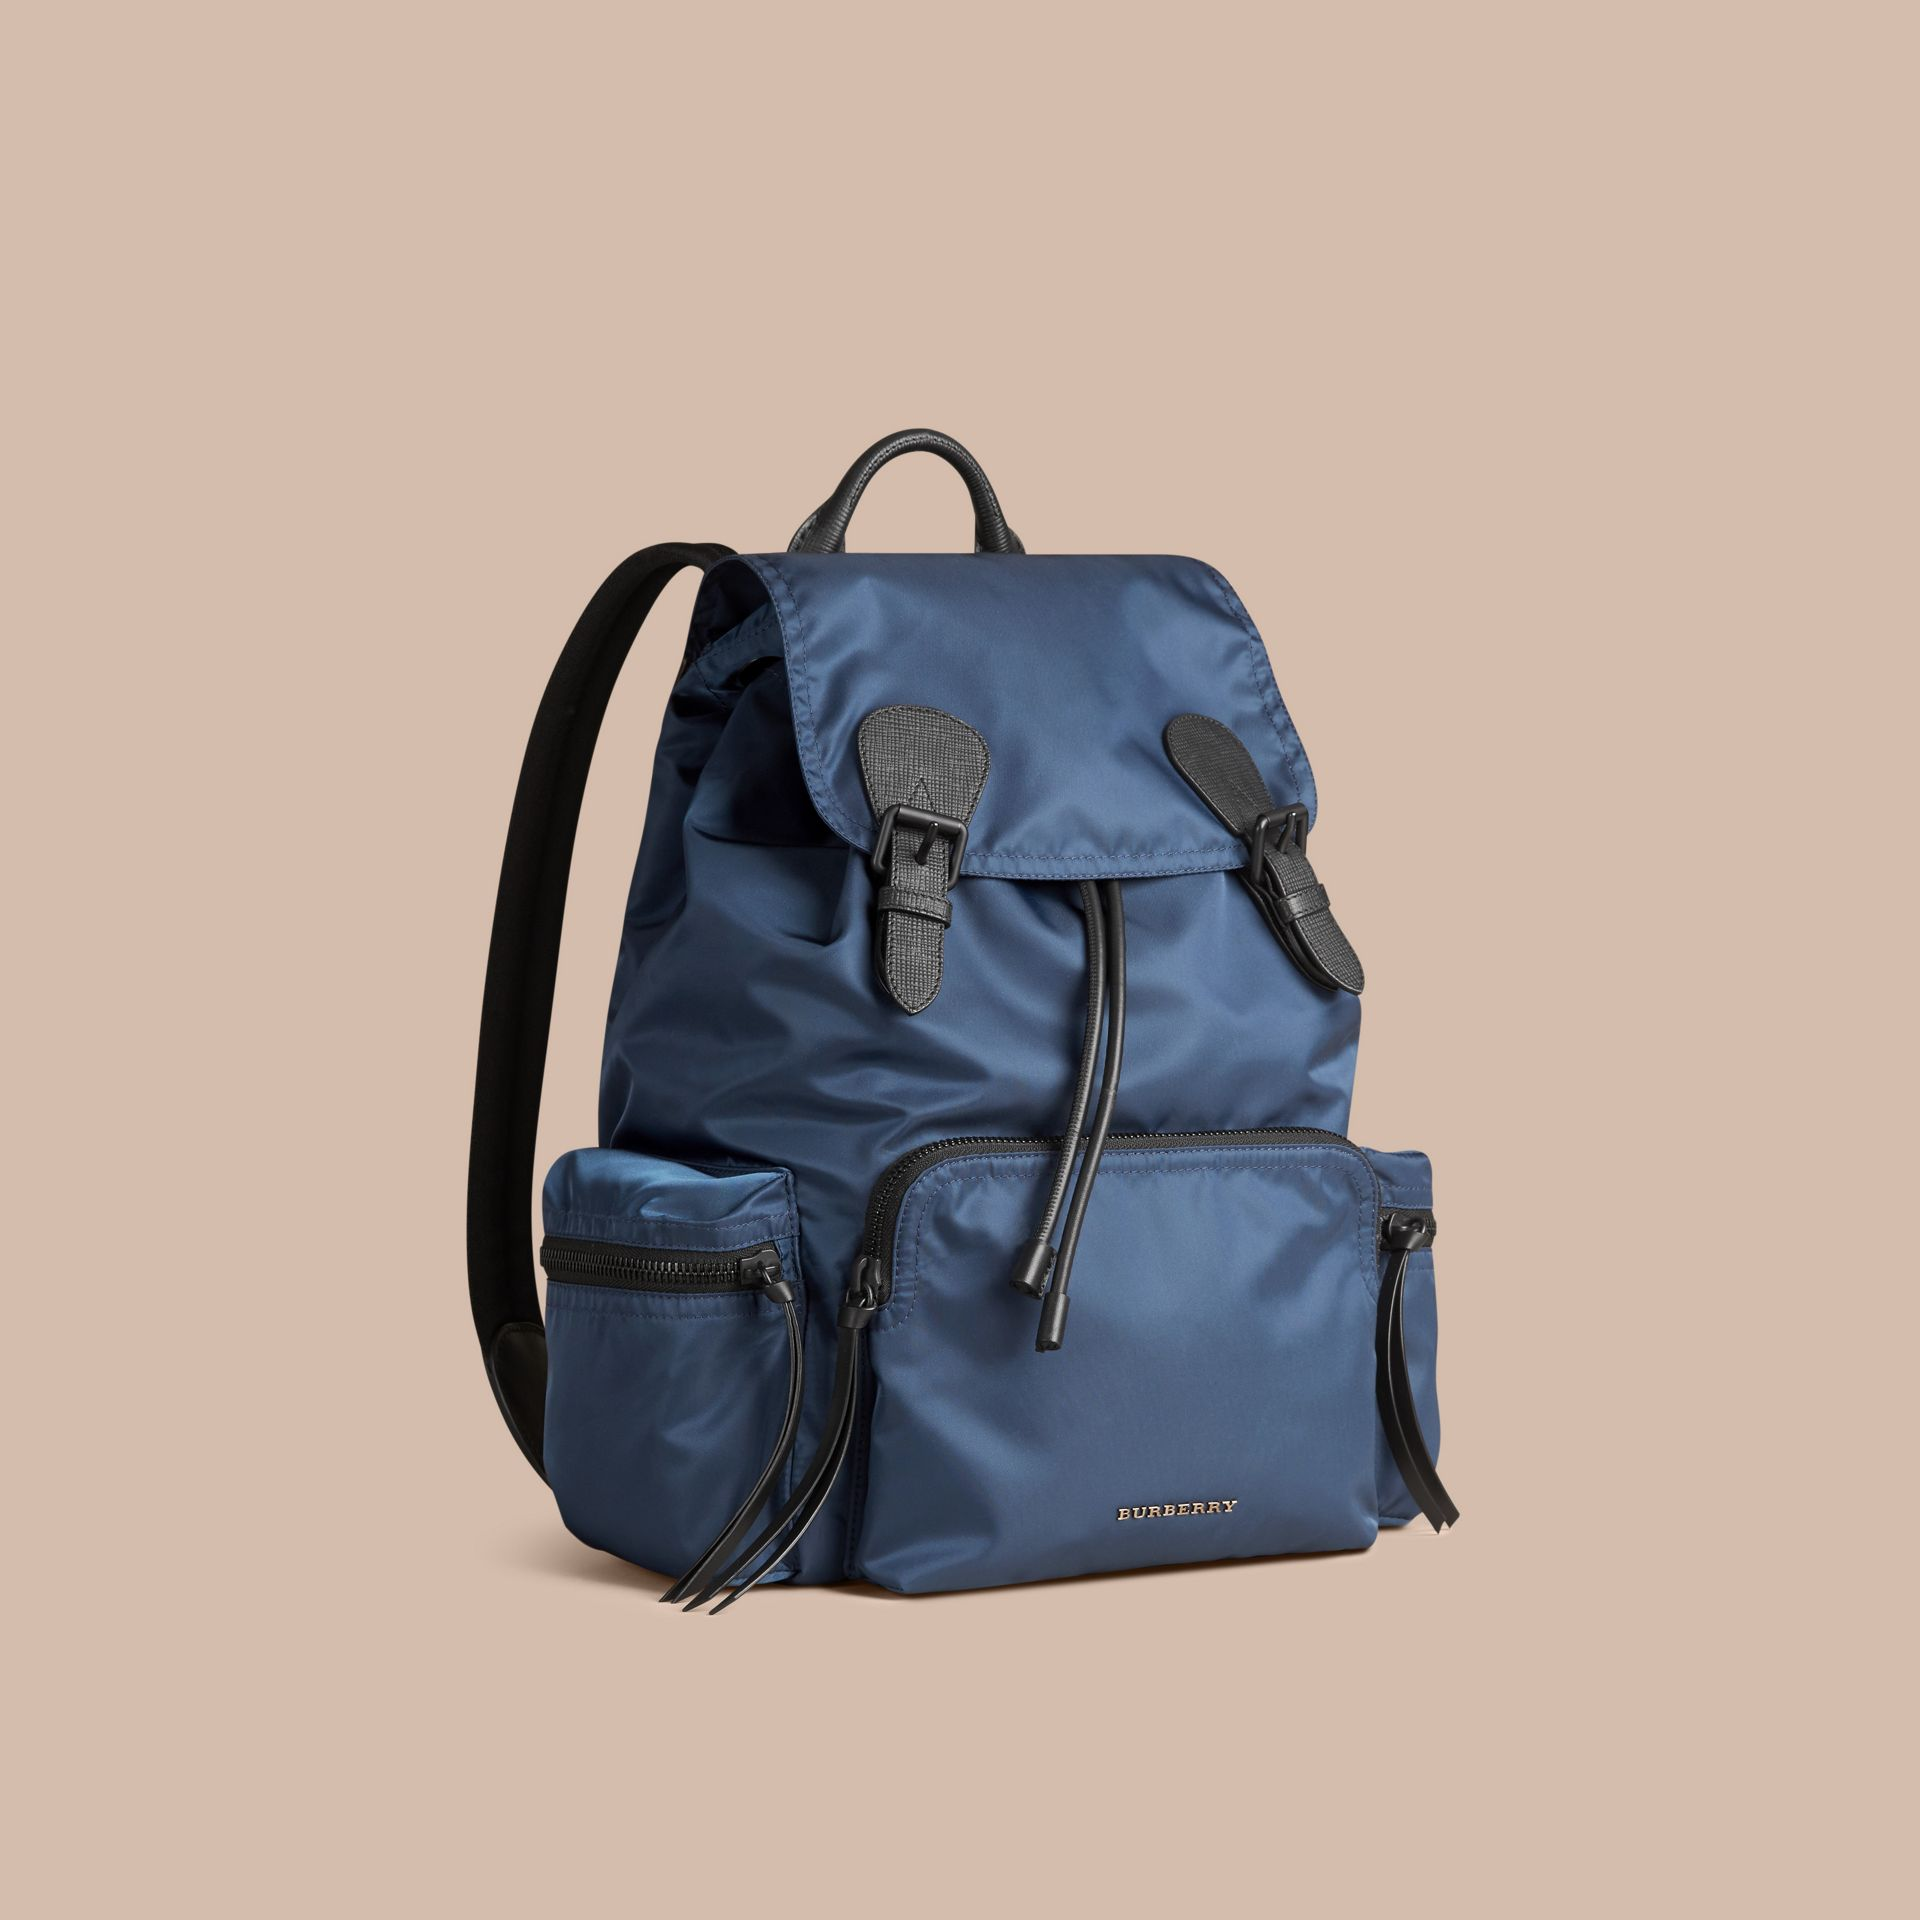 Steel blue The Large Rucksack in Technical Nylon and Leather Steel Blue - gallery image 1